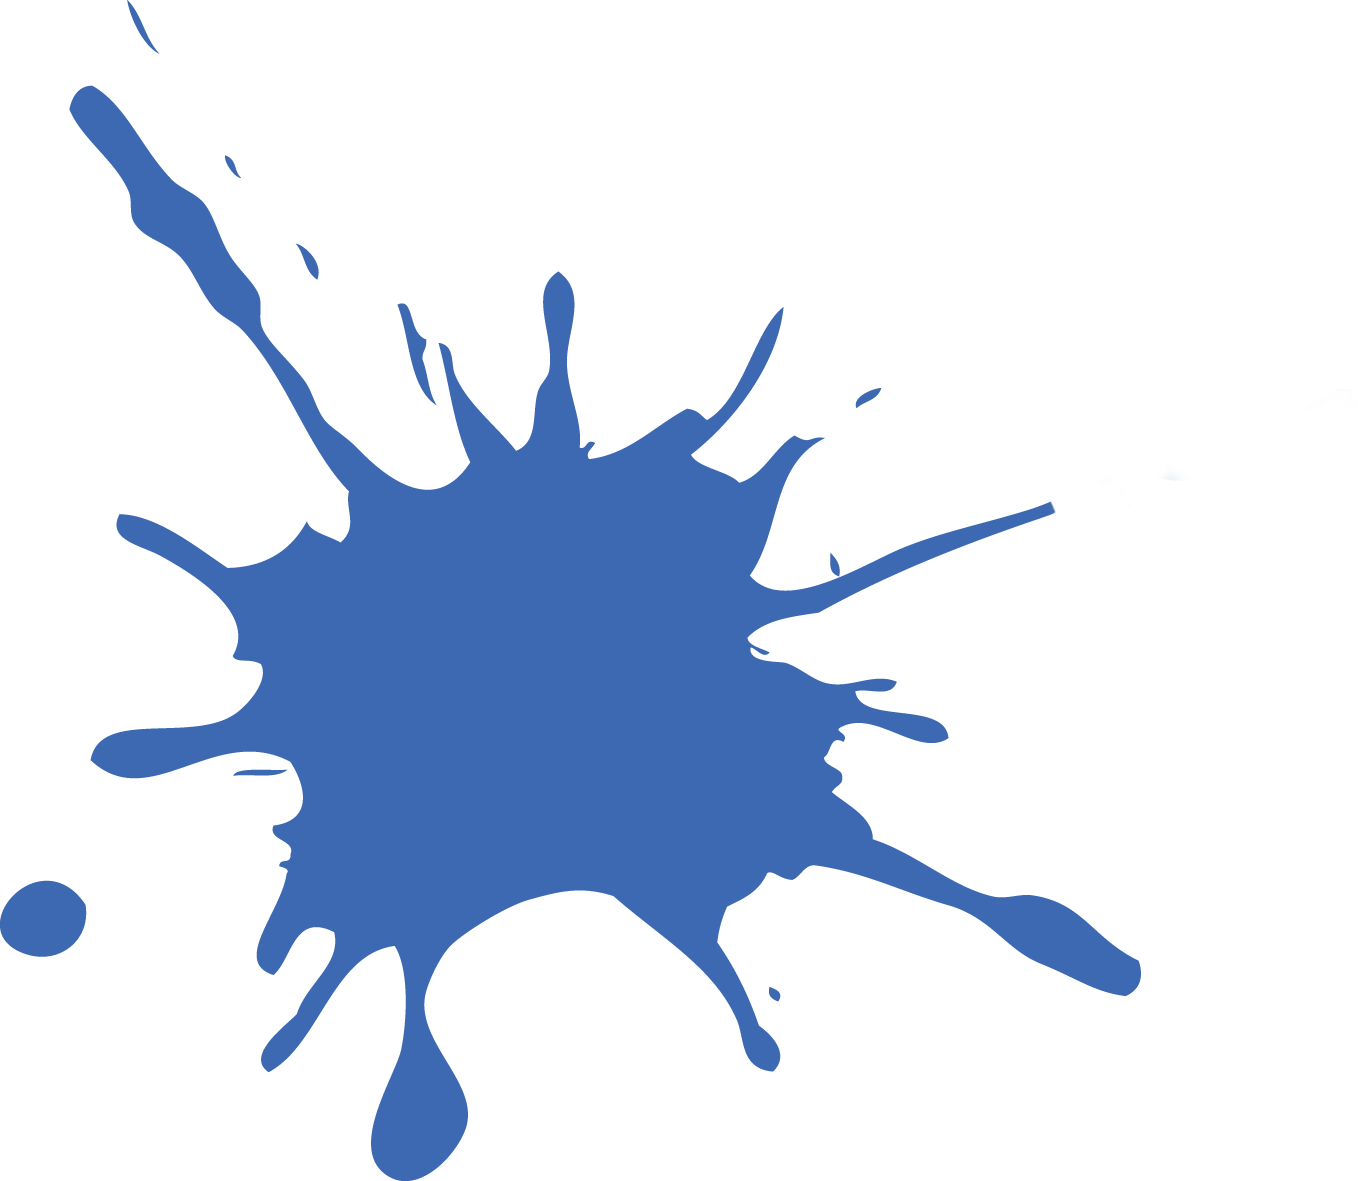 Paint splater png. Blue splat free icons